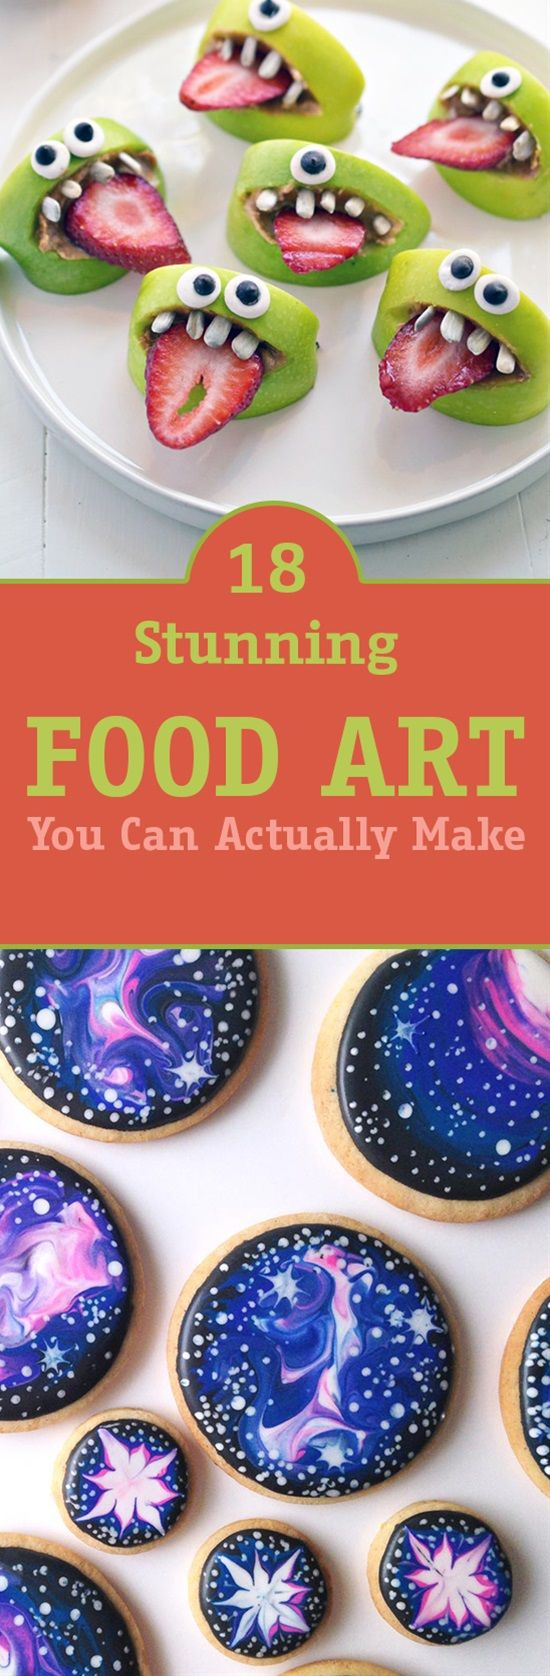 Food art always catches our eyes but it looks almost impossible to make if you're not a professional. Well that's not true you can still make food art even if you don't know anything about it. Here are some easy and beautiful food art you can actually make.